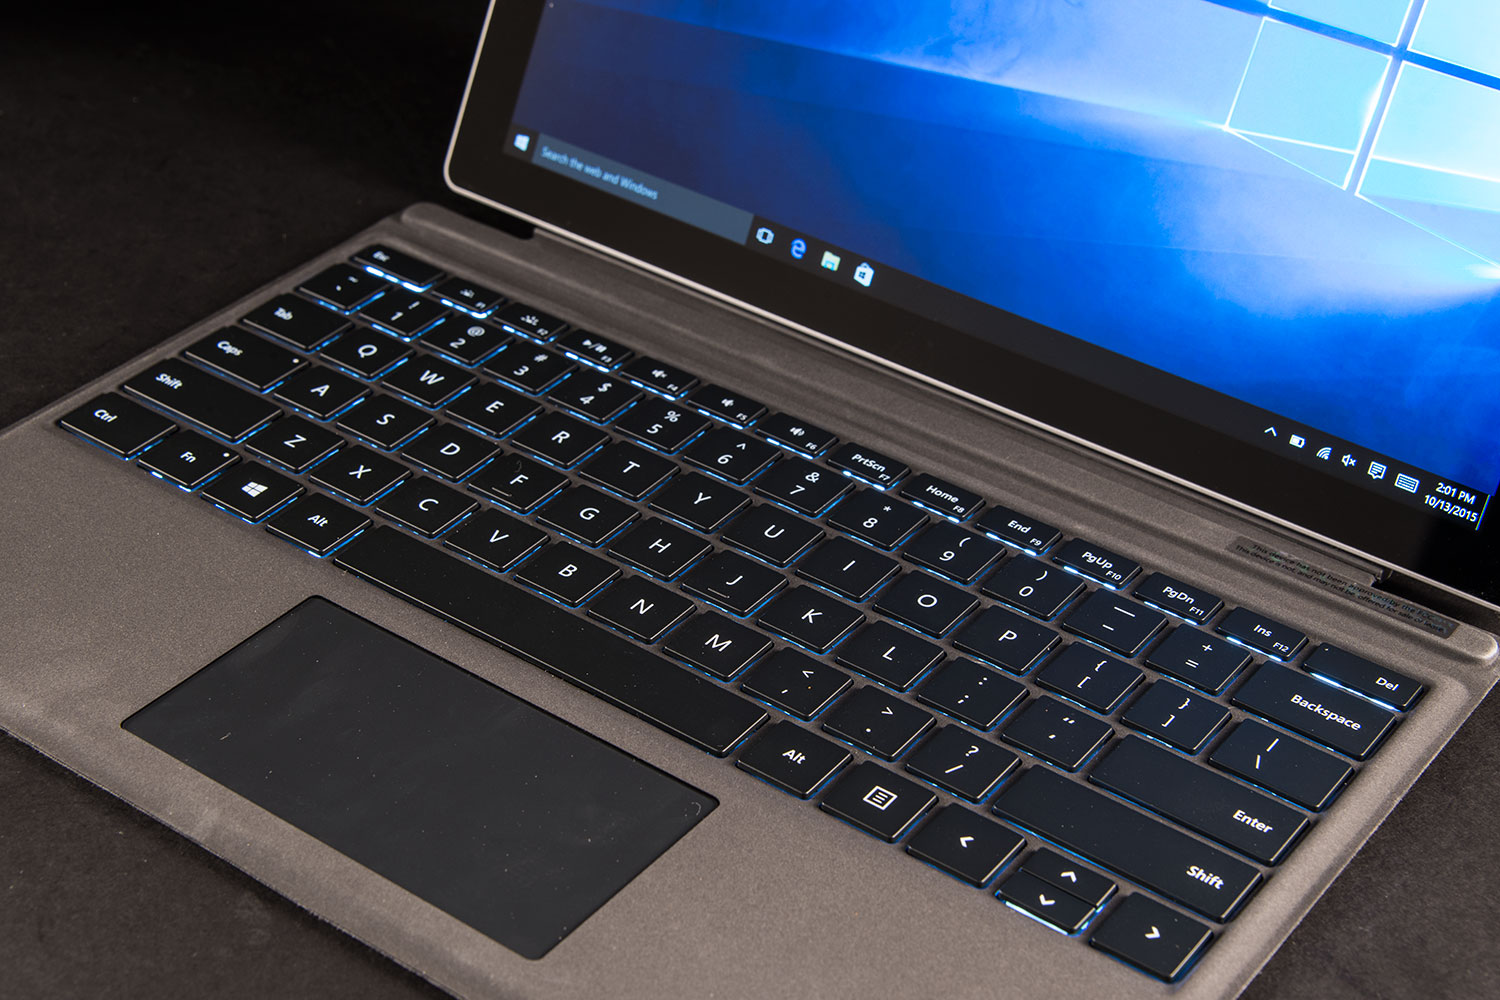 Microsoft is still fixing the Surface Pro 4 - updates cover keyboard